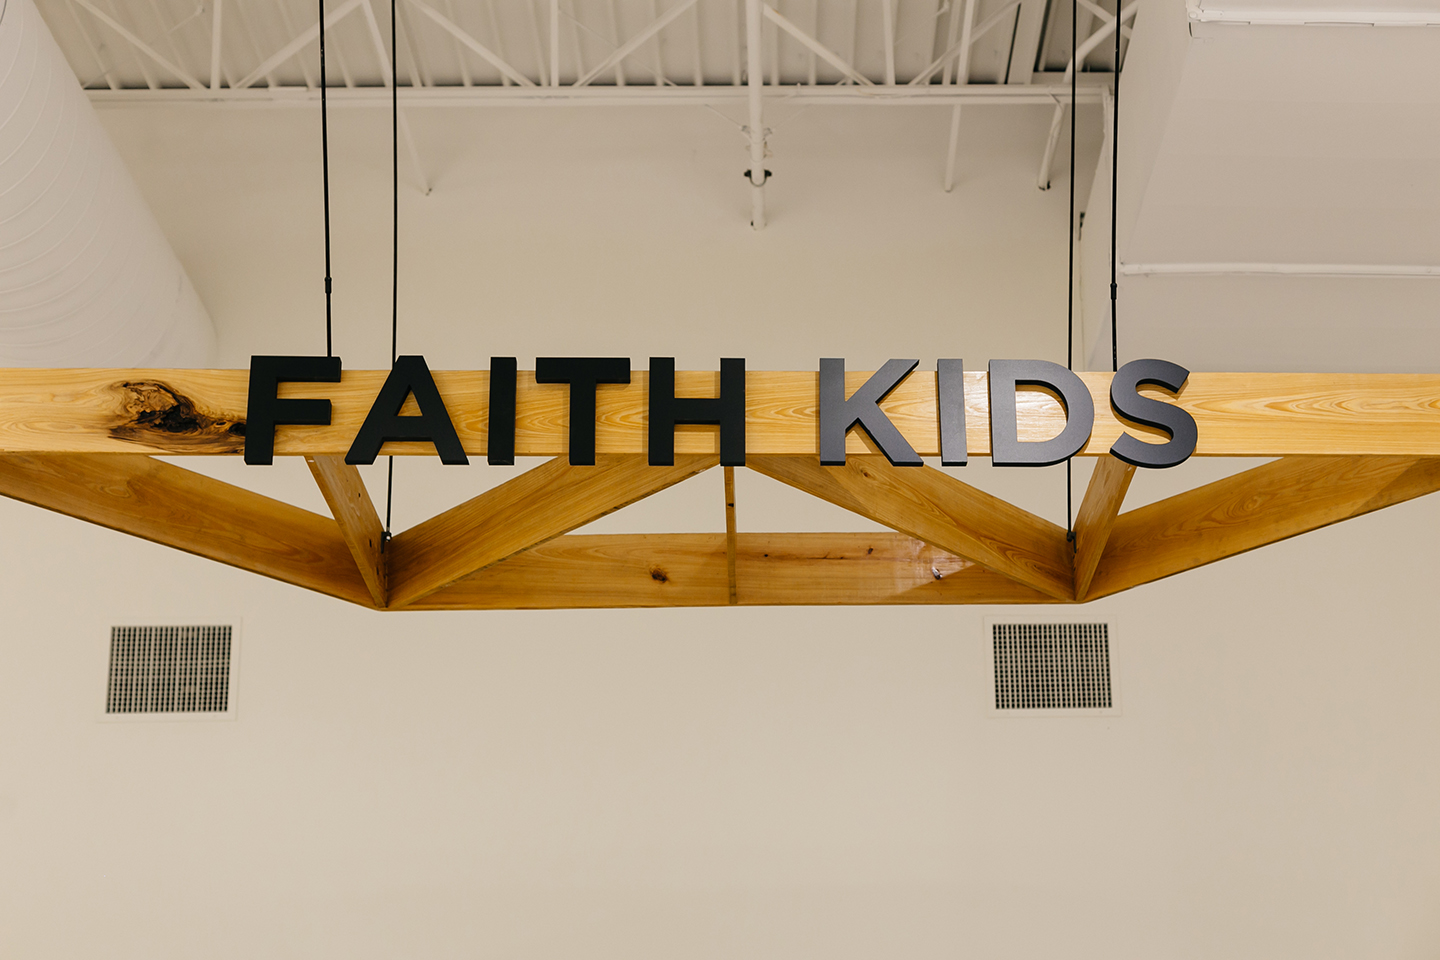 faith-assembly-faith-kids-sign-1-web